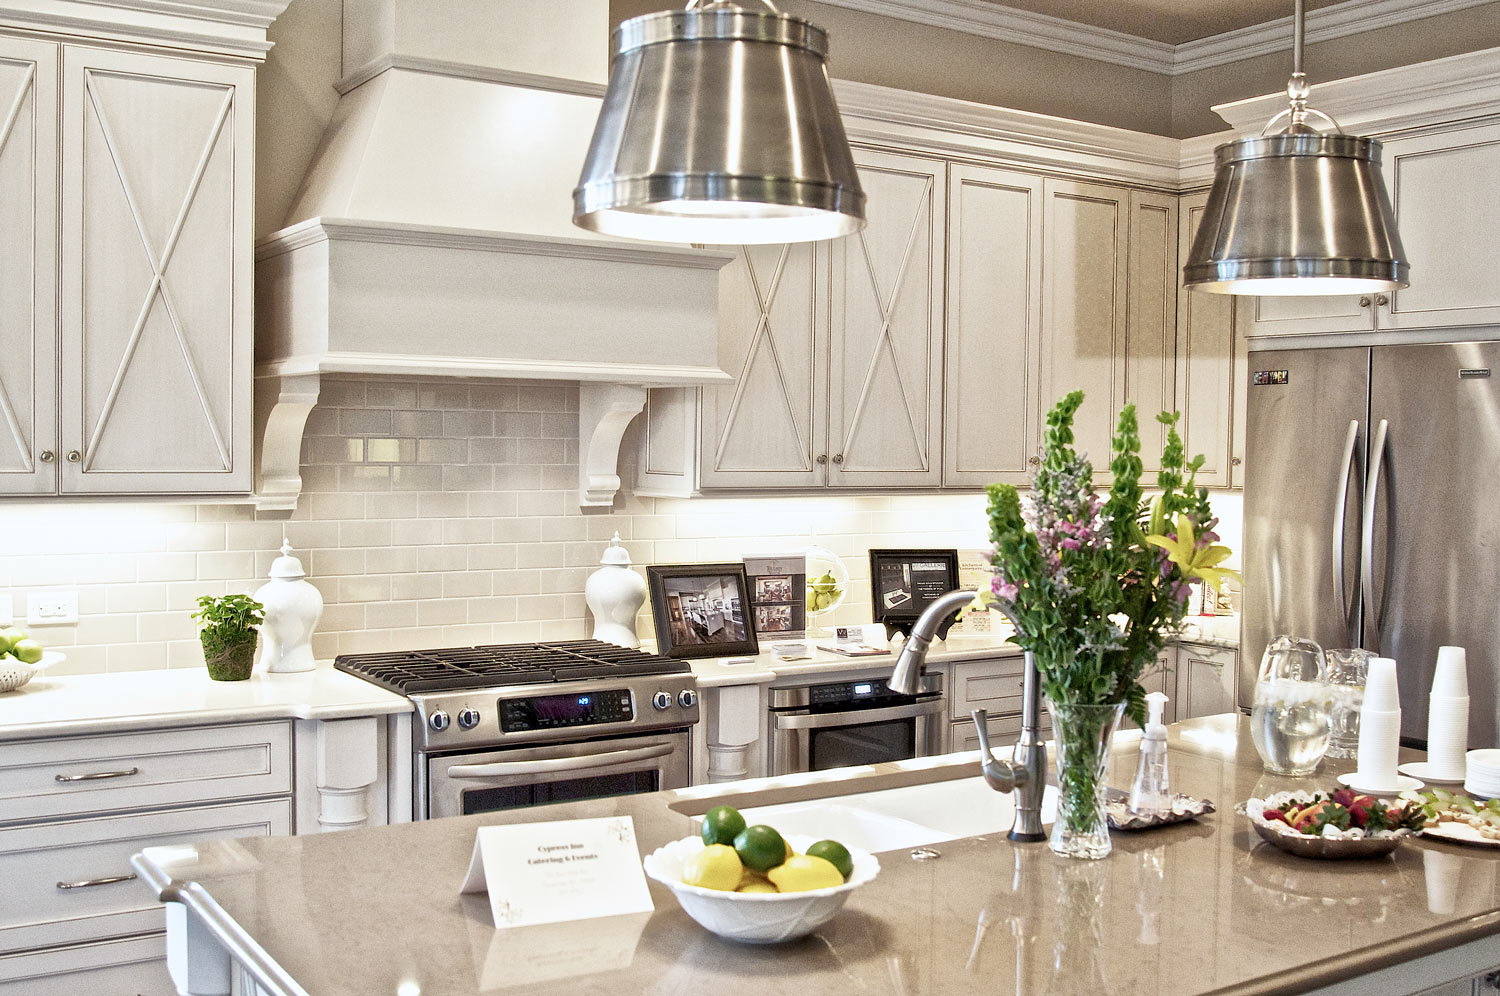 What Are Corbels And How Are They Used In A Kitchen Design And Remodel Toulmin Cabinetry Design